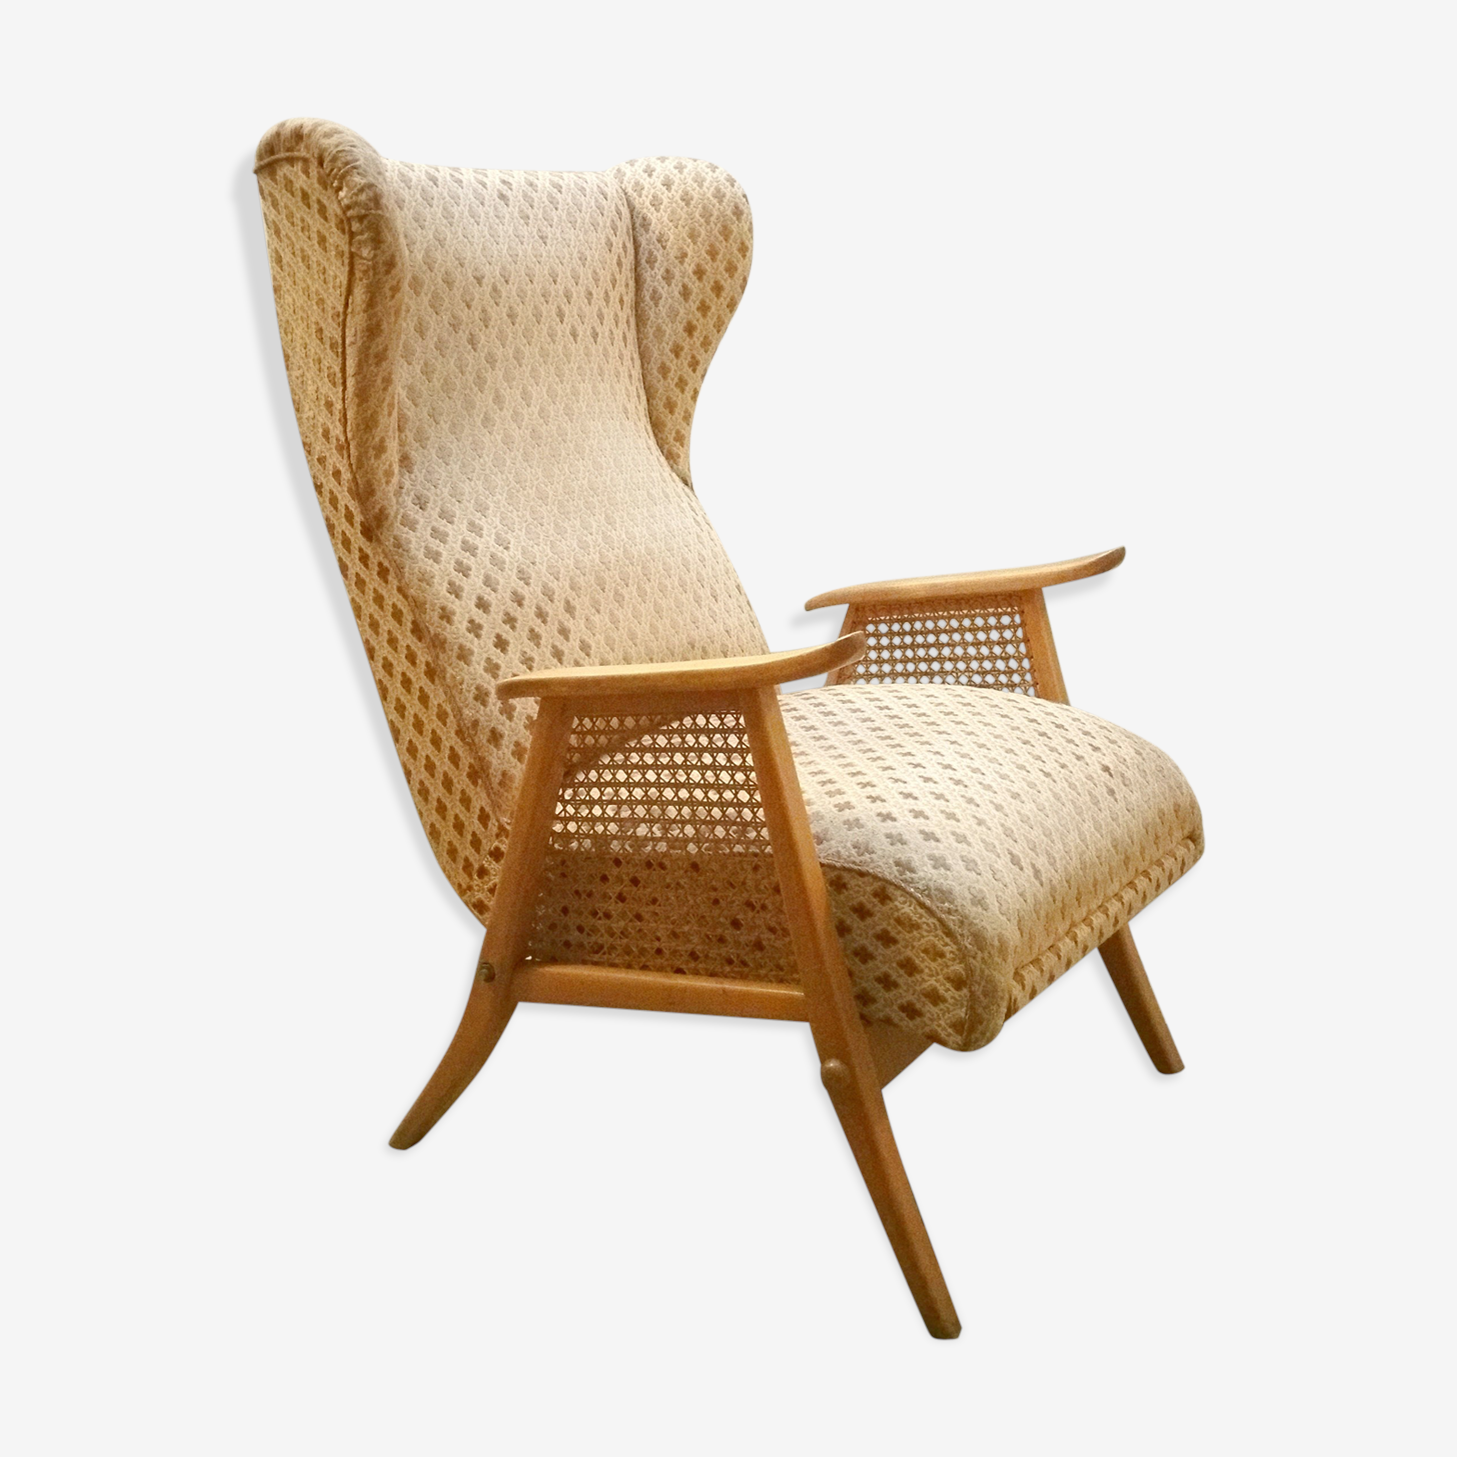 Fauteuil wing chair a oreilles et a systeme relaxation années 50/60